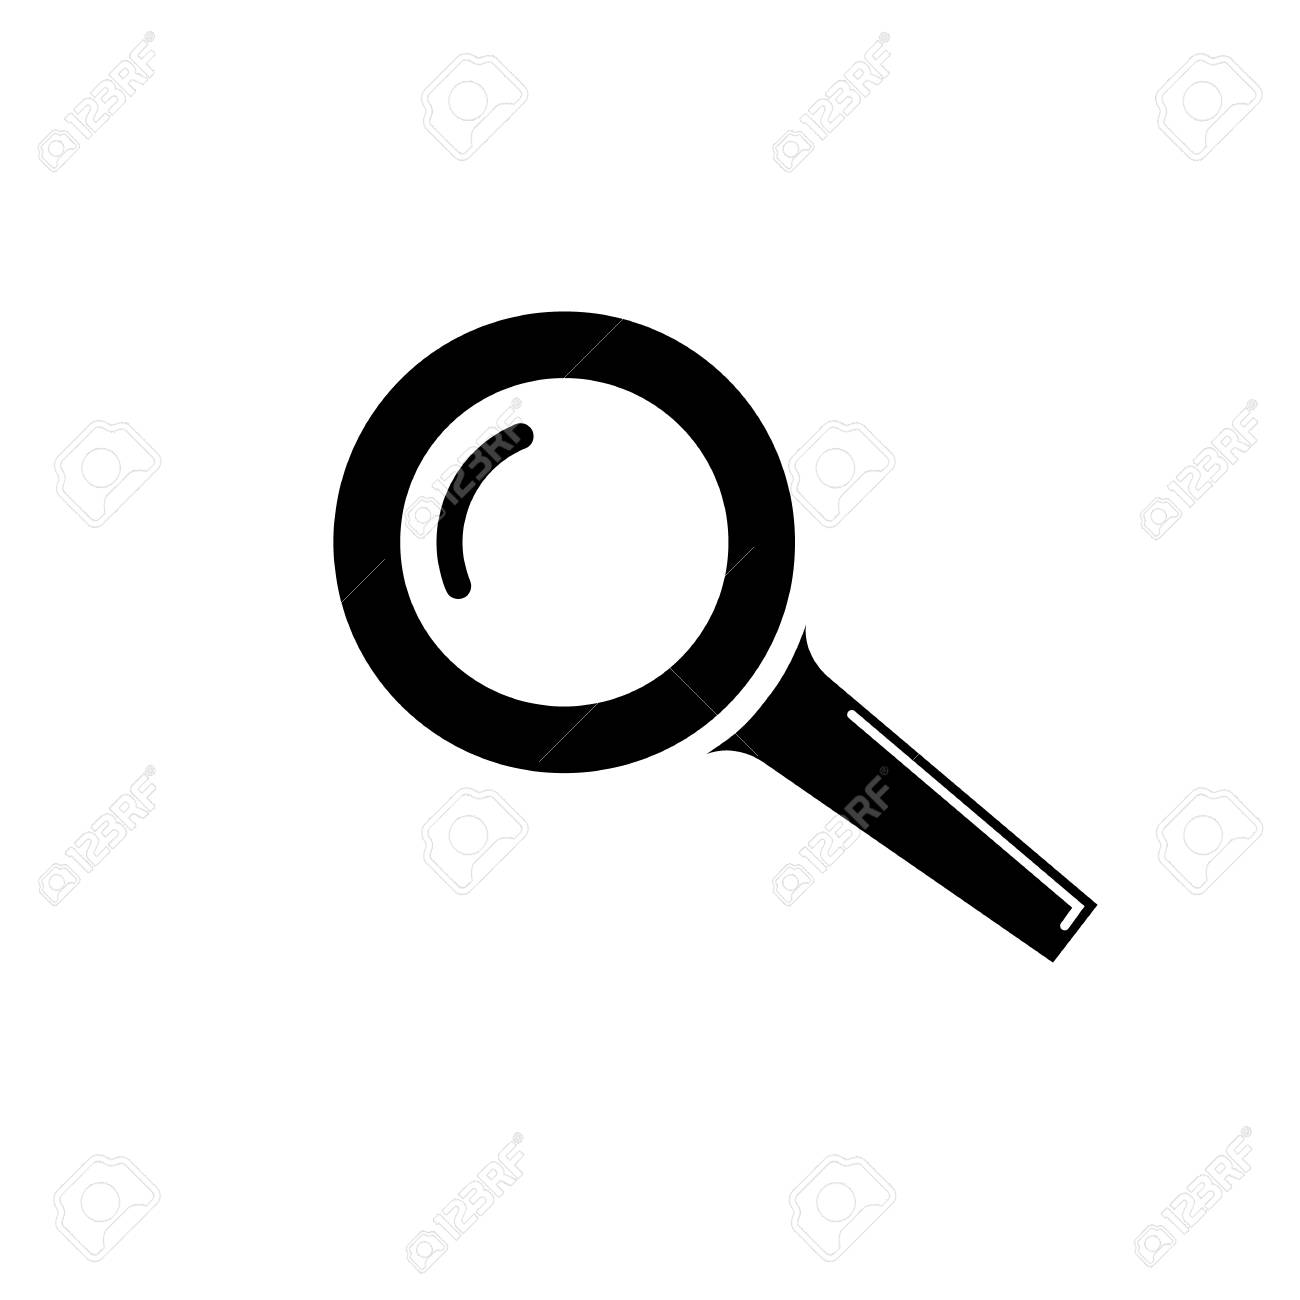 hight resolution of magnifying glass icon stock vector 104723057